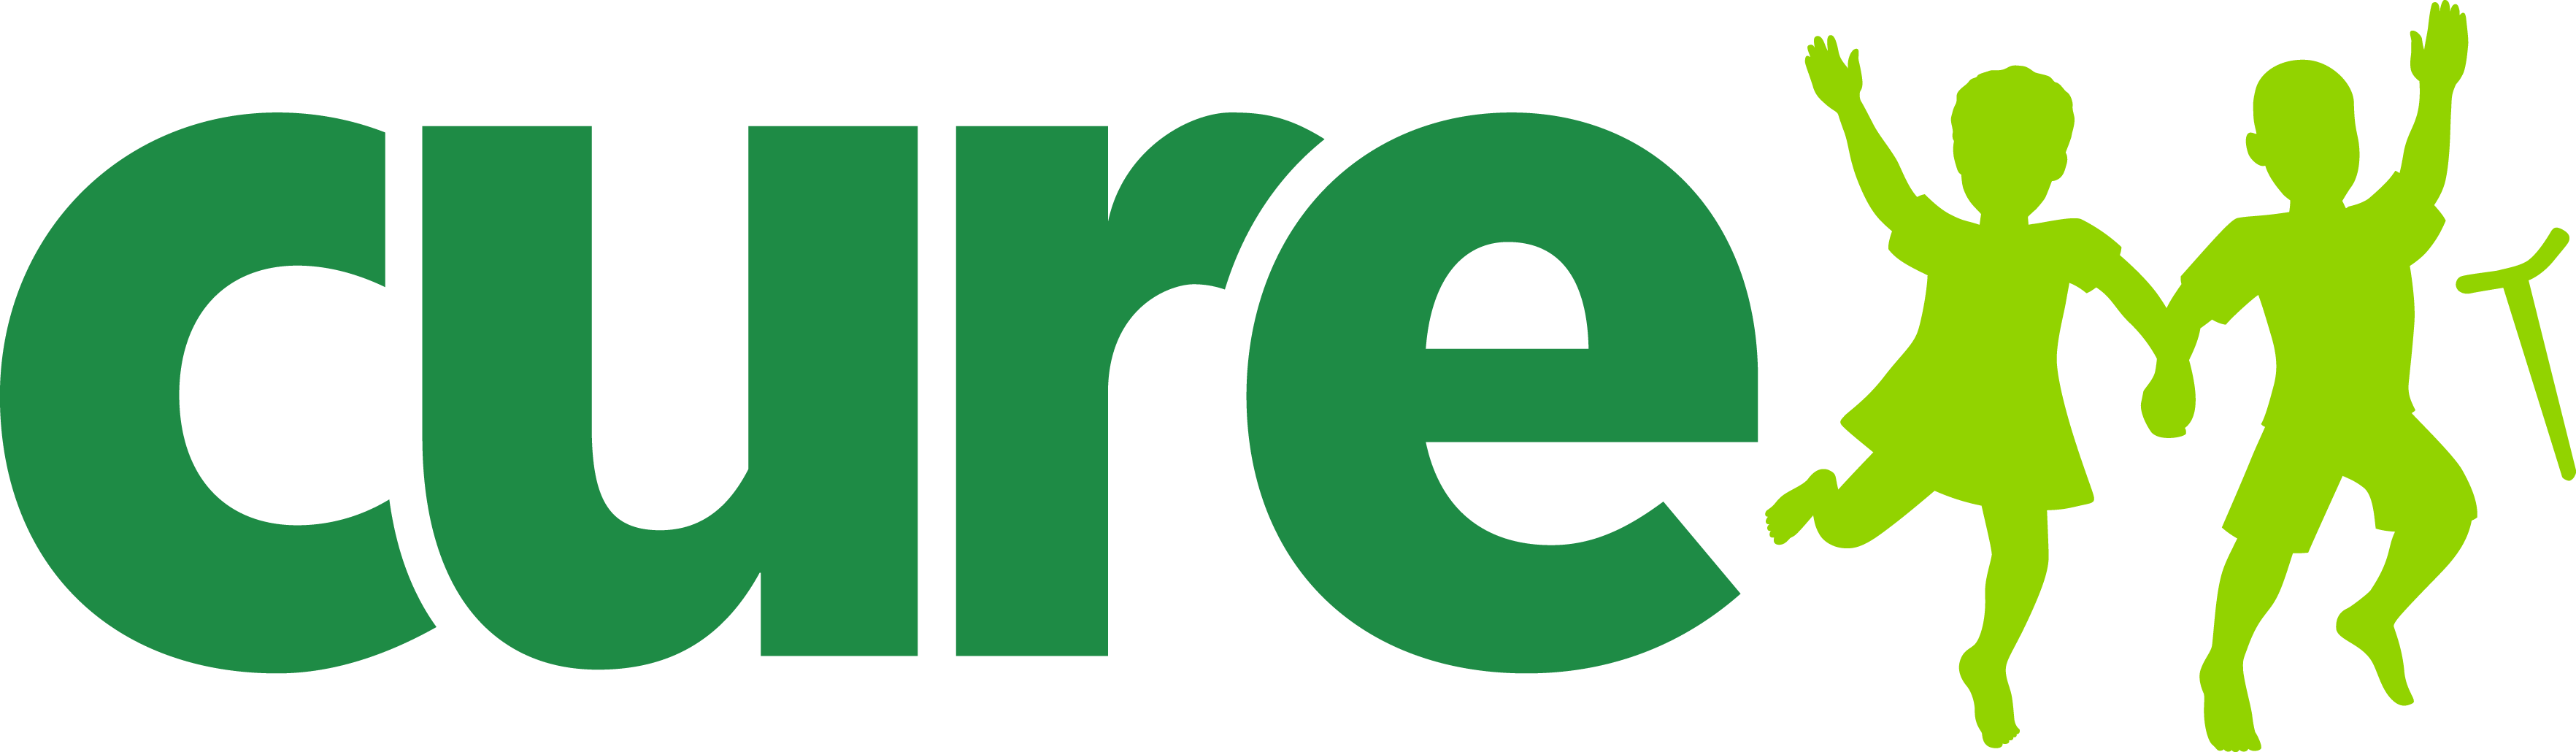 1375882790cure-logo-large.png